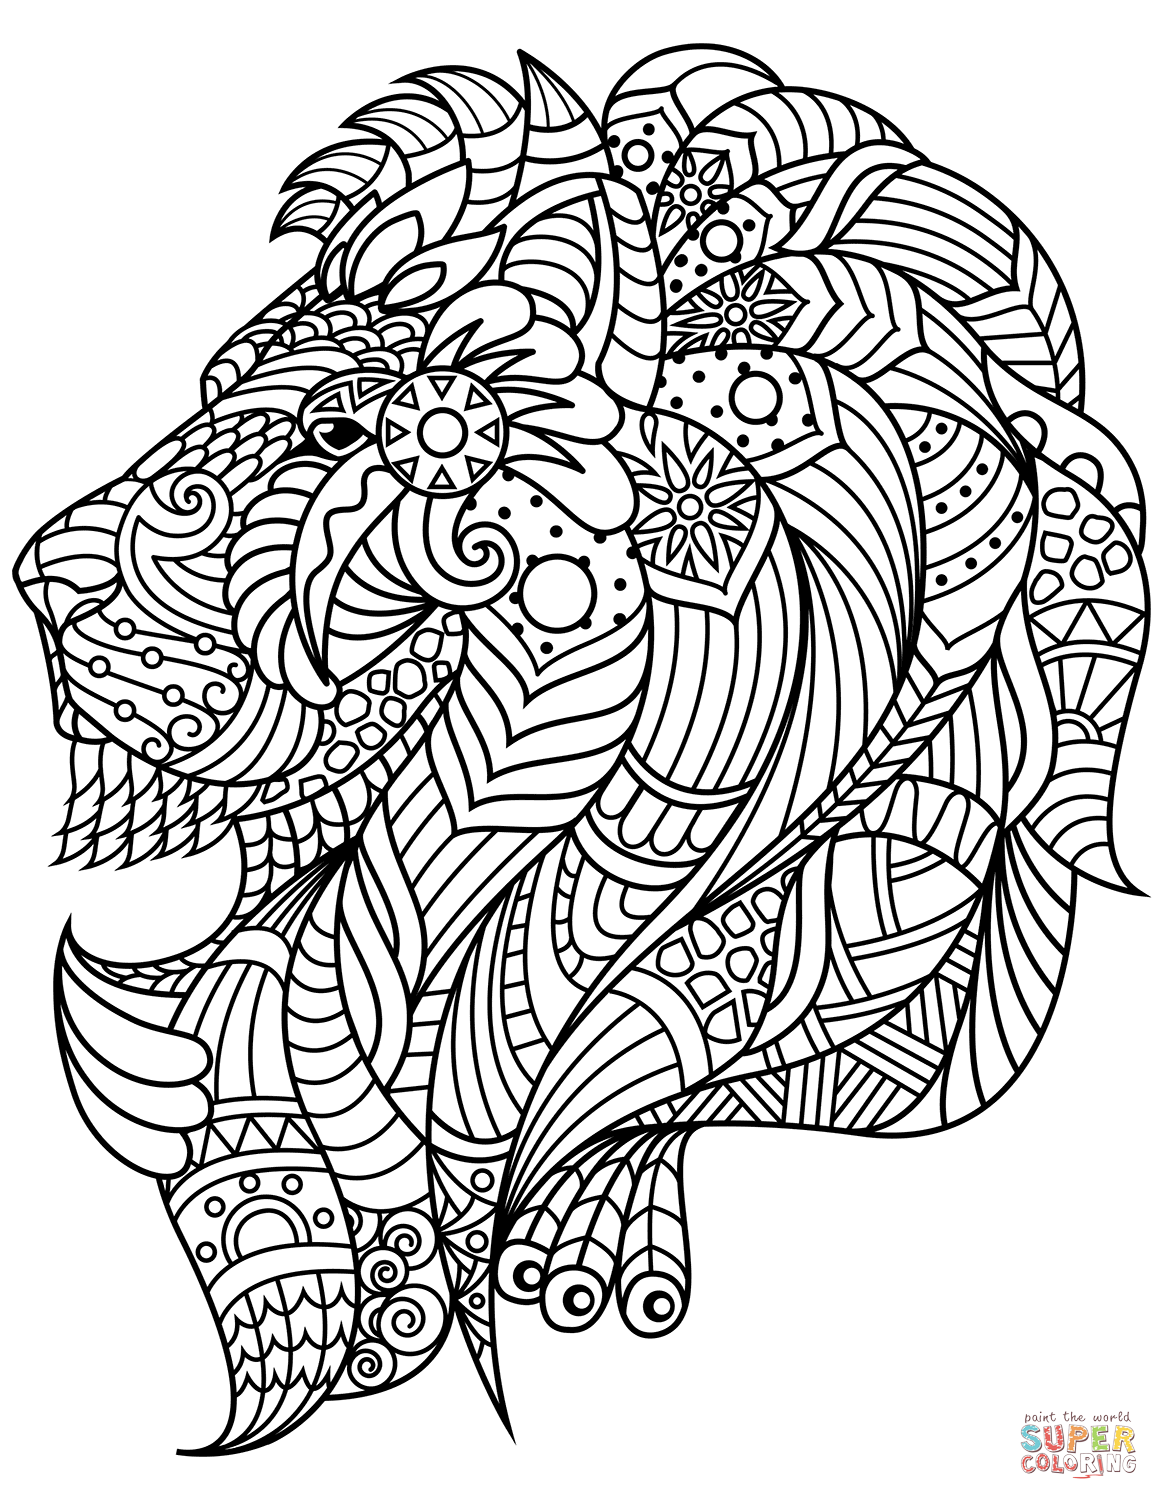 zentangle coloring pages free printable adult zentangle zen turtle coloring pages printable pages free zentangle coloring printable